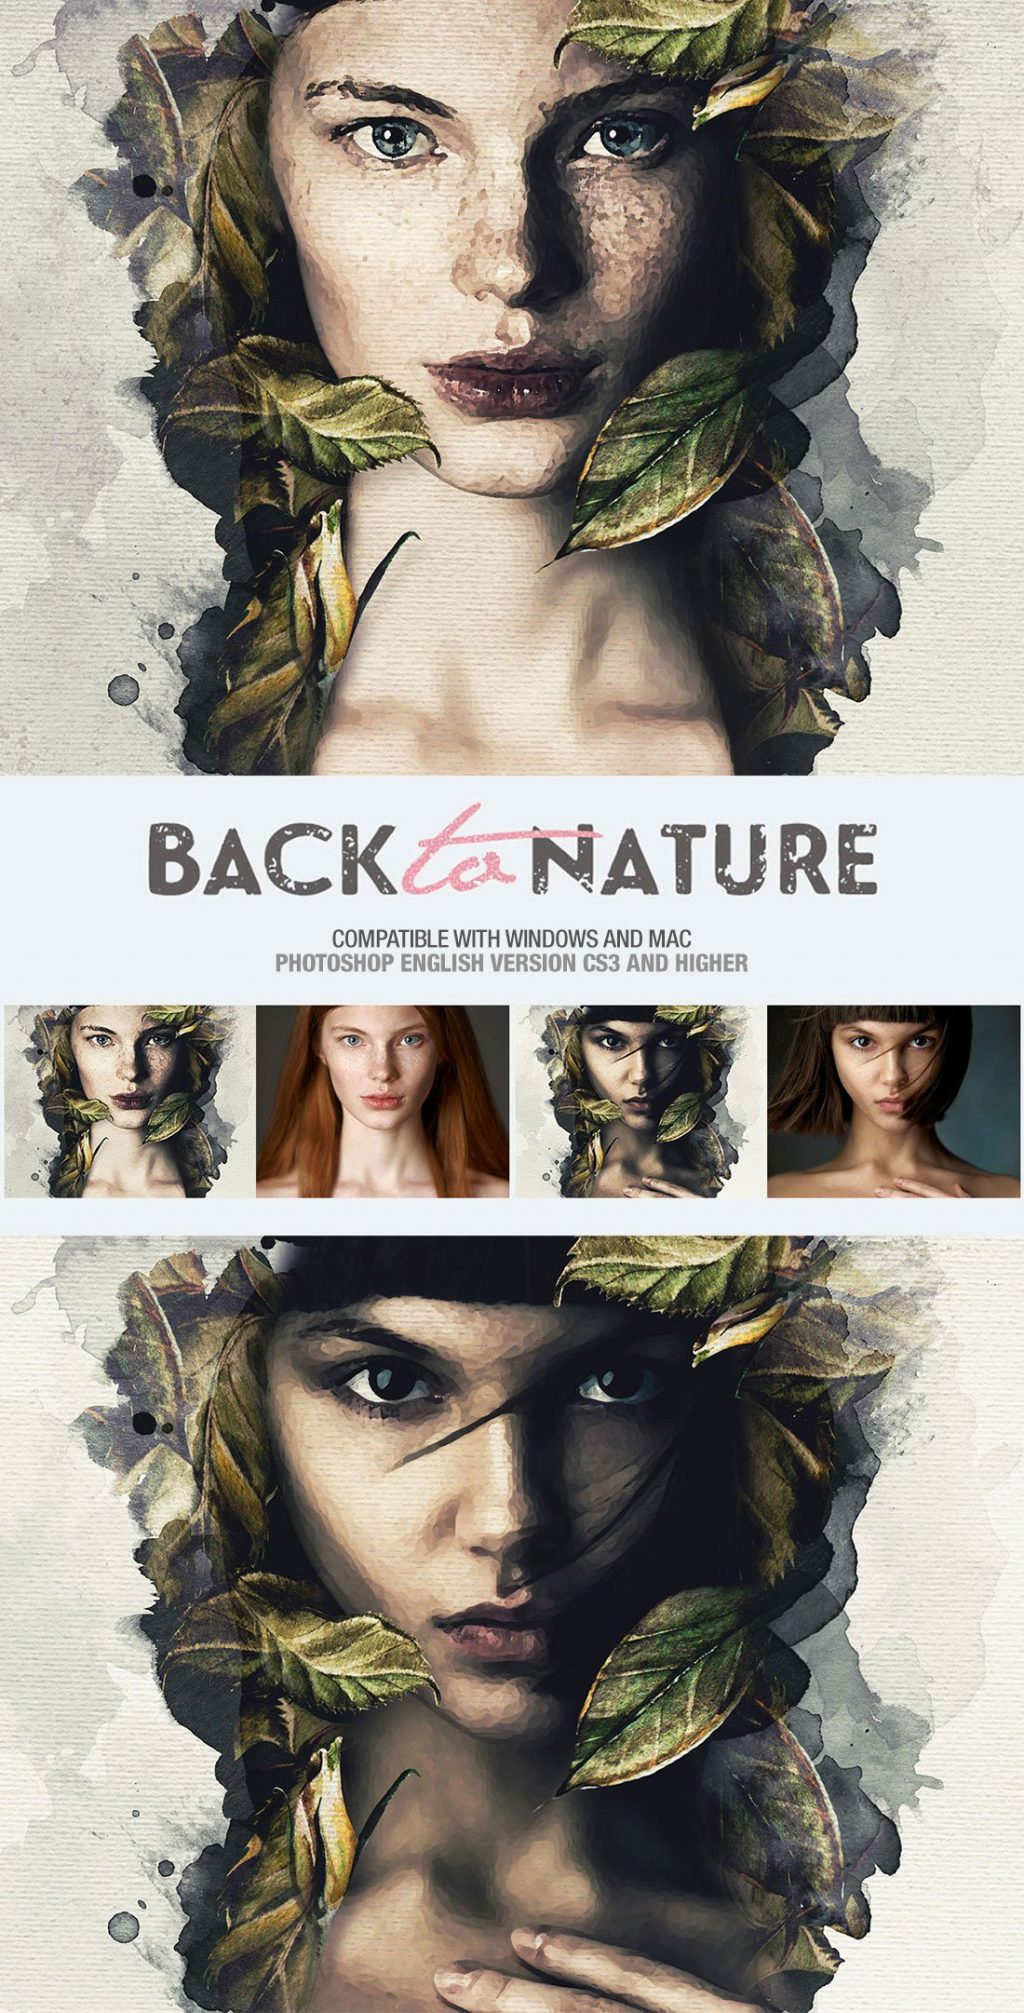 Photoshop Actions & Templates: Artistic Photo FX Bundle - back to nature photo template design by amorjesu